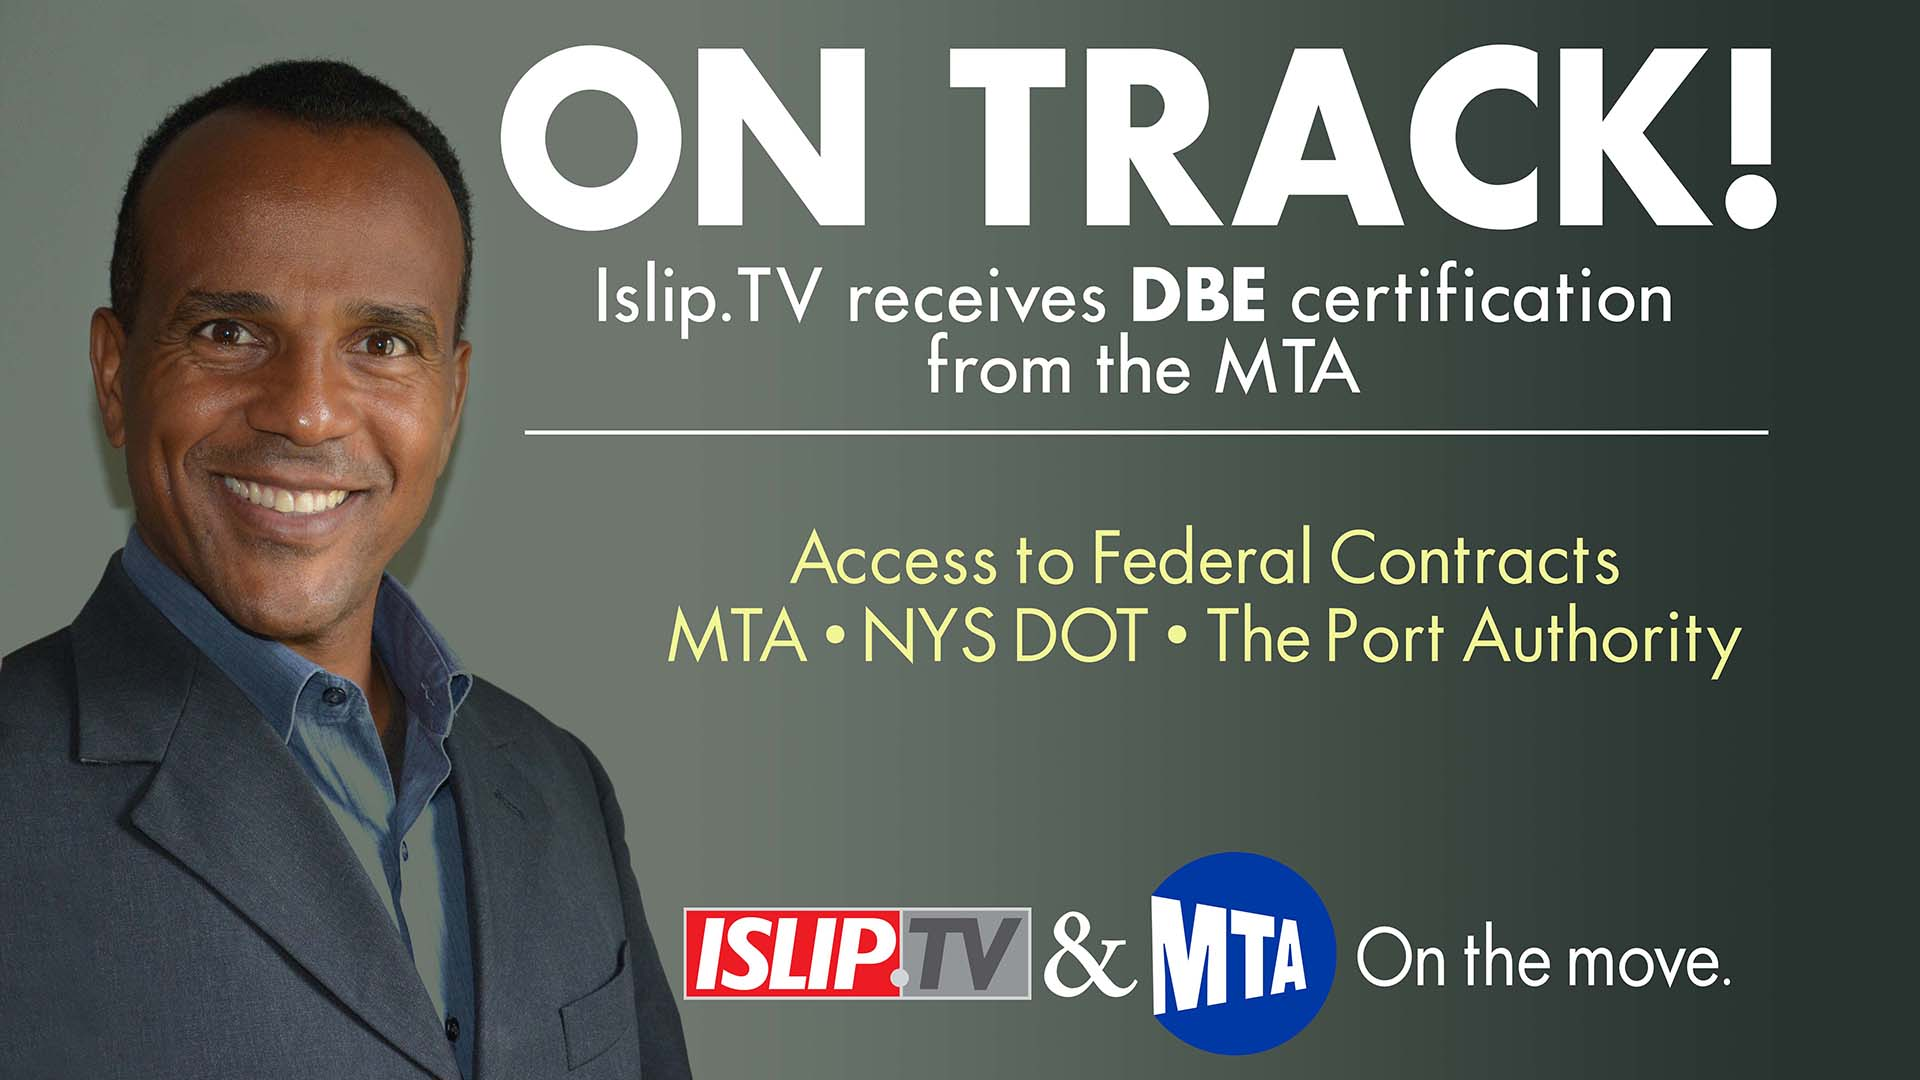 Islip TV Gets DBE Certification From The MTA